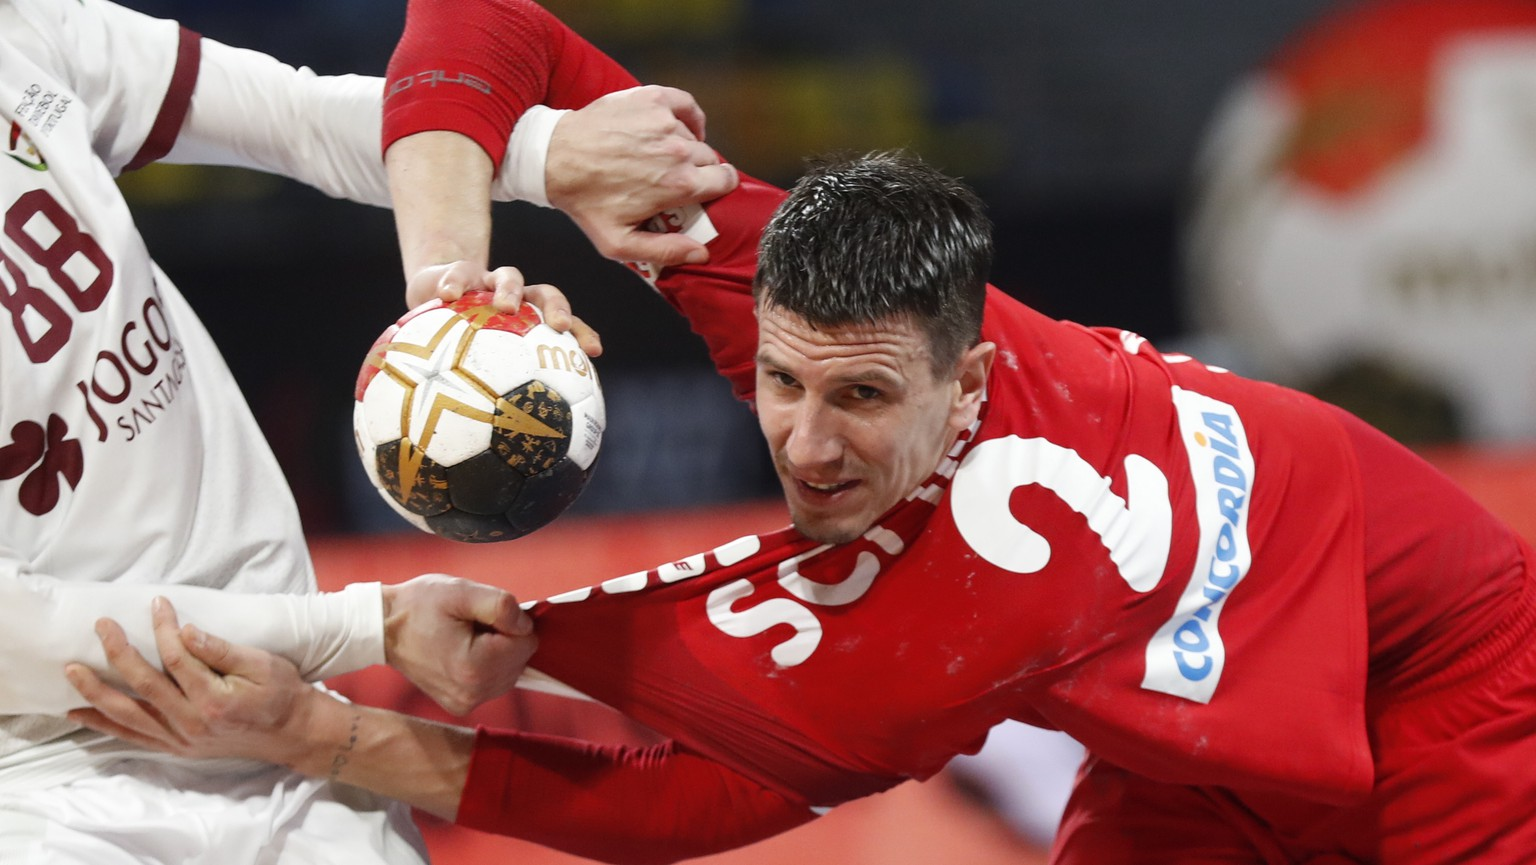 epa08958156 Andy Schmid (R) of Switzerland in action against Fabio Magalhaes of Portugal during the Main Round match between Switzerland and Portugal at the 27th Men's Handball World Championship in Cairo, Egypt, 22 January 2021.  EPA/Petr David Josek / POOL